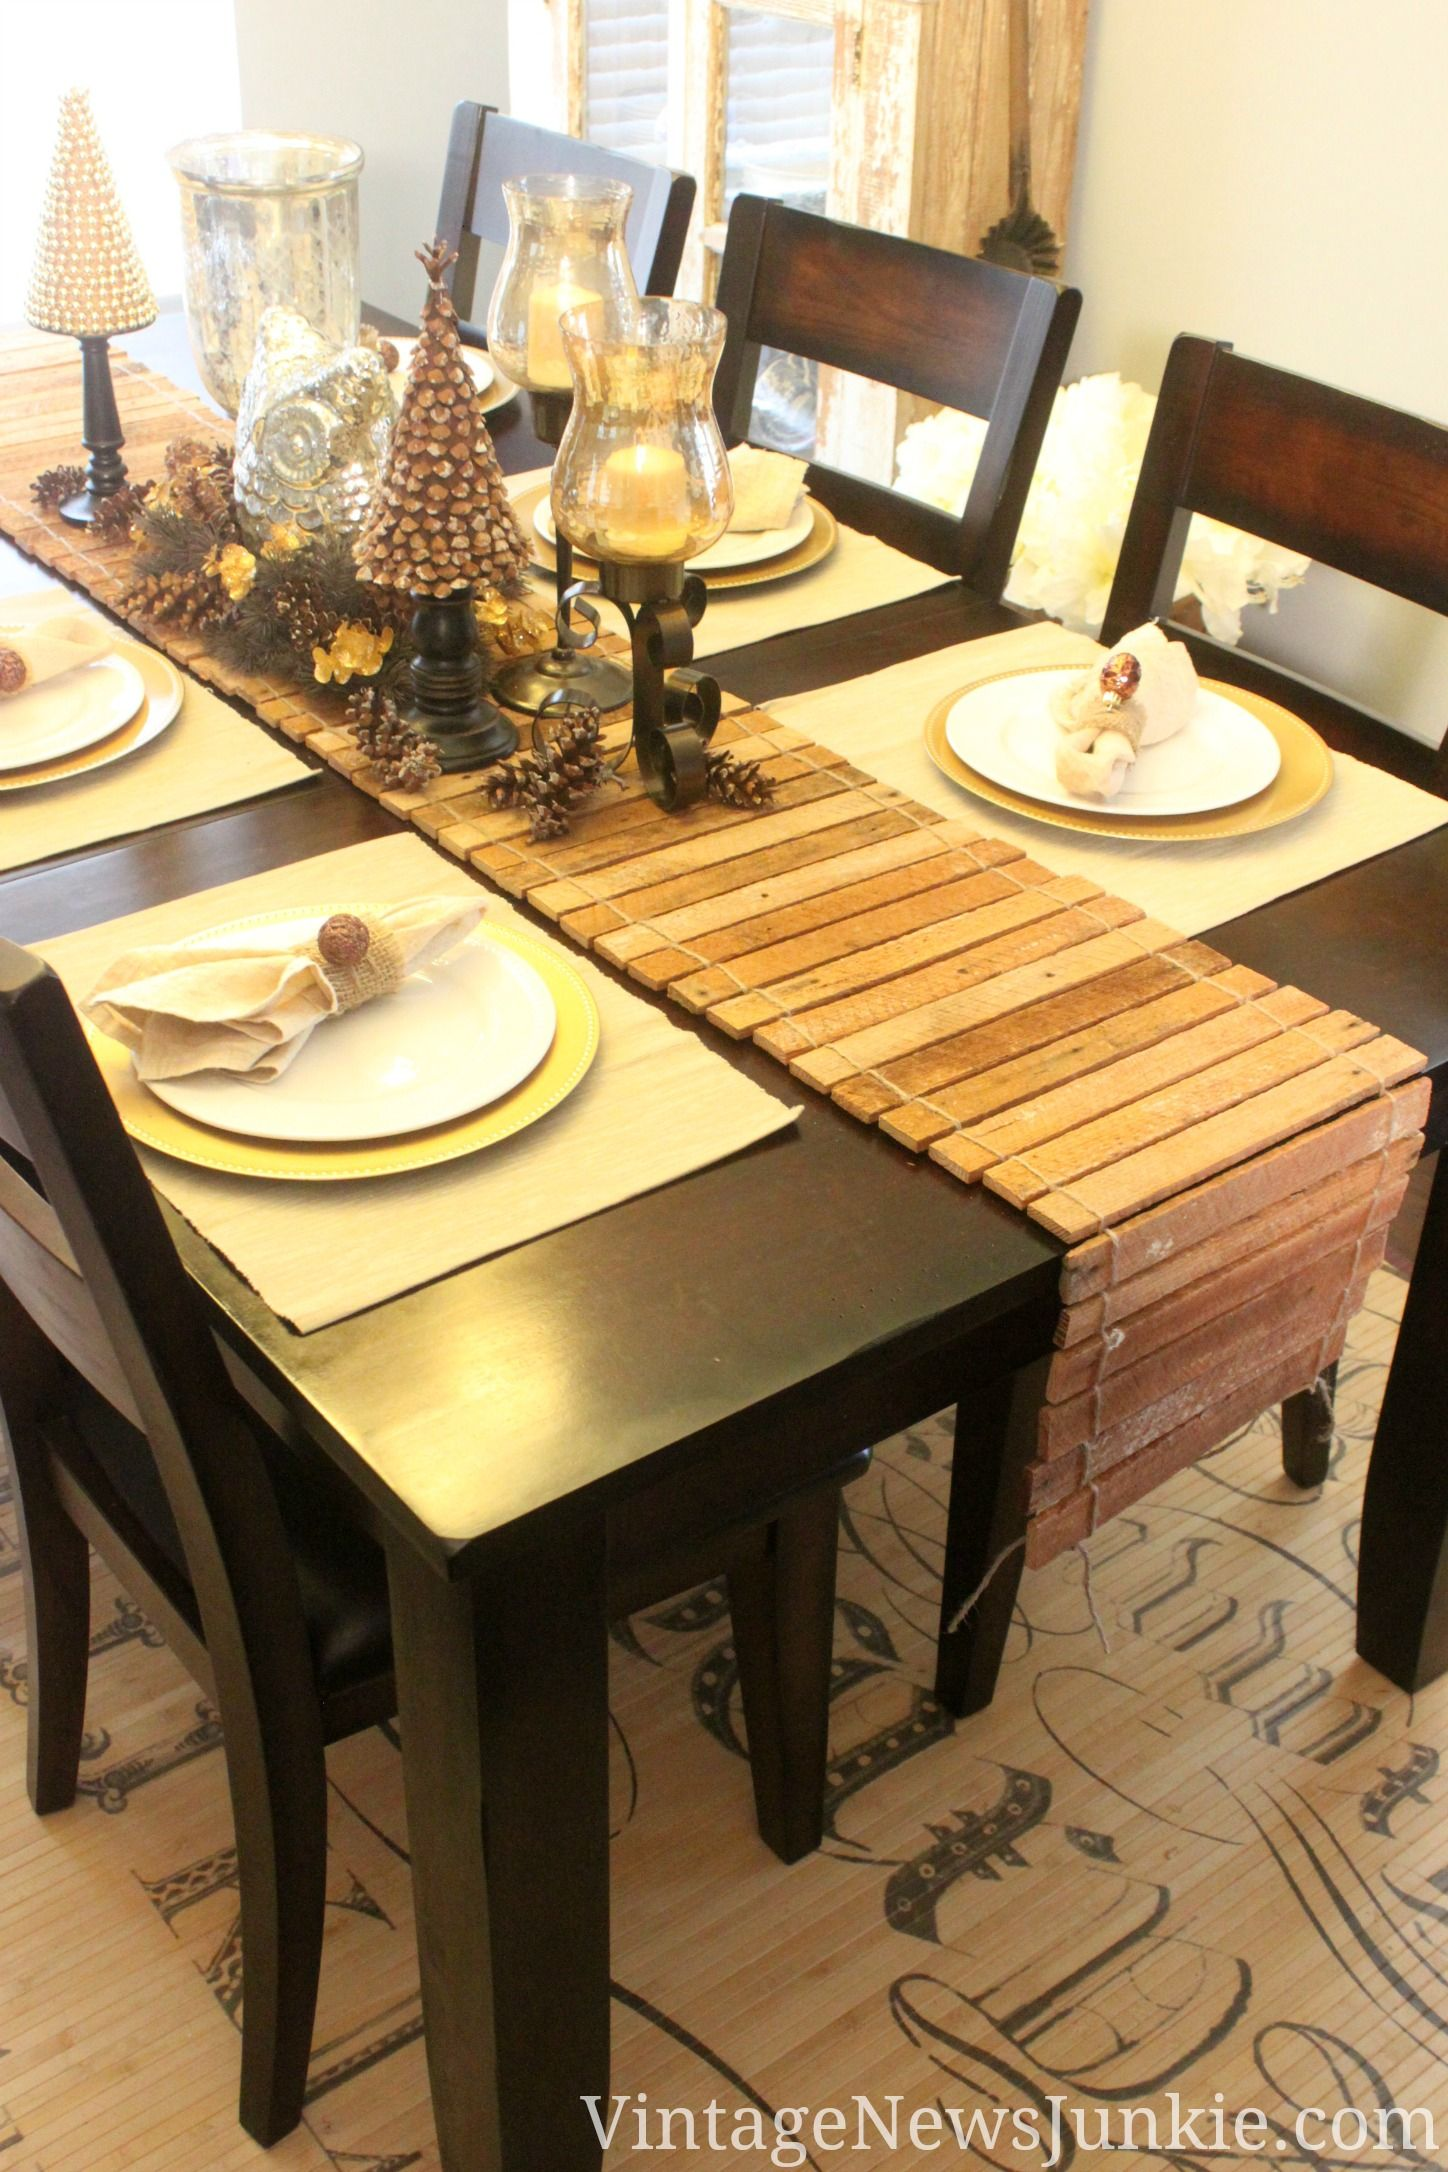 How To Make A Table Runner Out Of Scrap Wood Video Tutorial Dining Room Table Runner Diy Dining Room Dining Table Runners